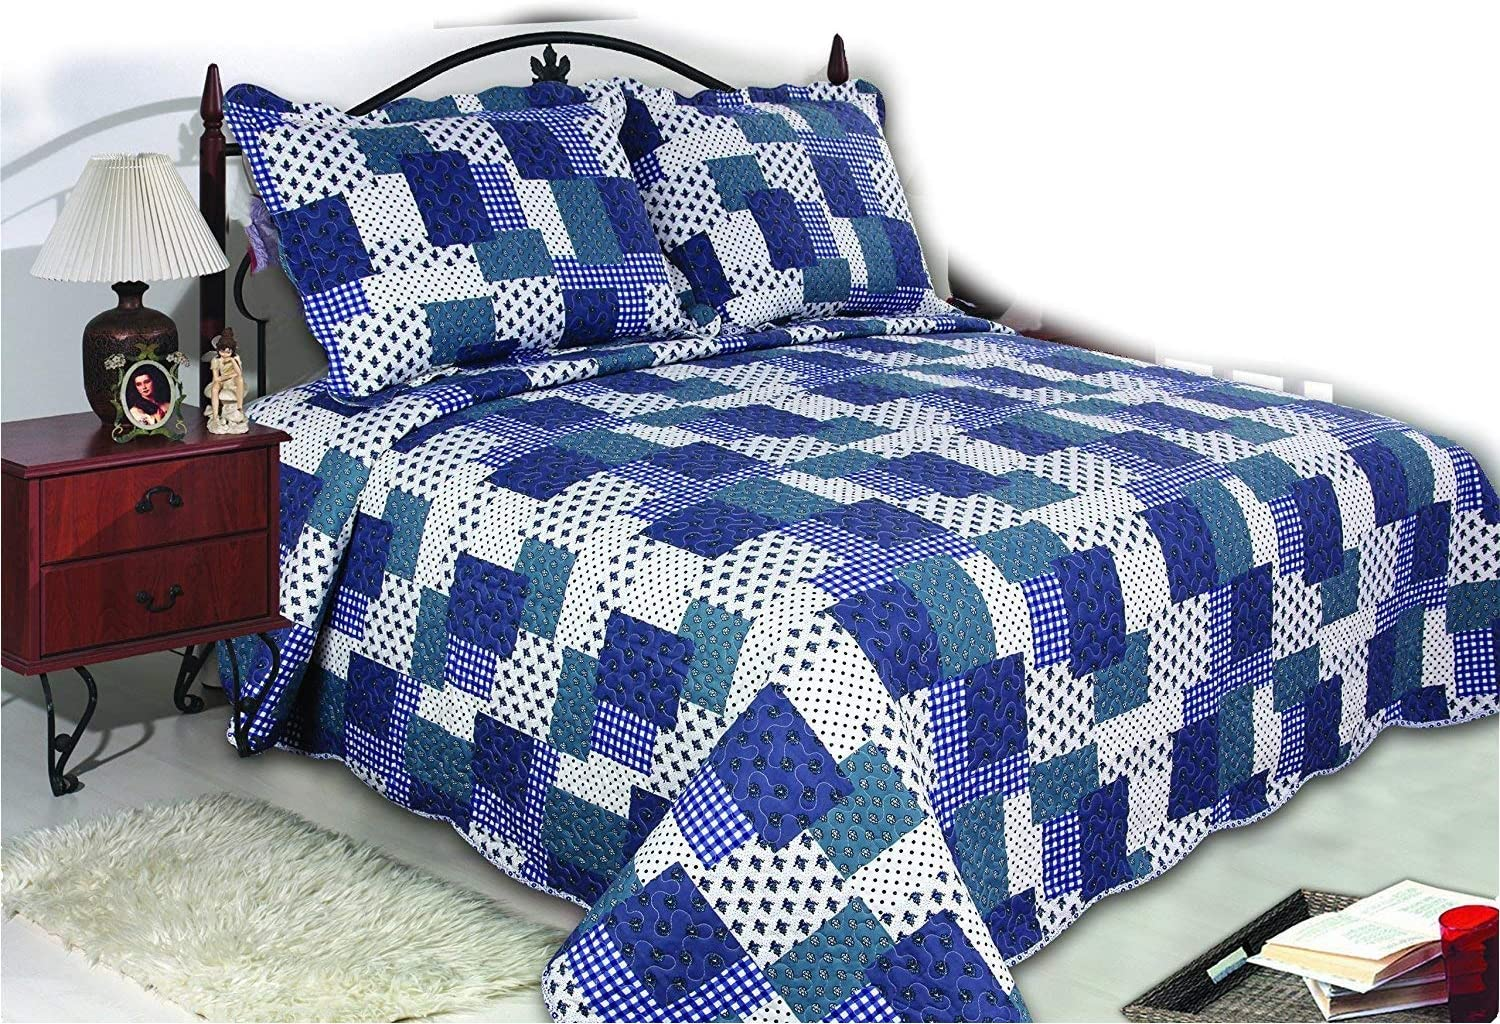 Amazon Com All For You 3 Piece Reversible Bedspread Coverlet Quilt Set King Size 90 X 100 Blue Patchwork Prints Home Kitchen